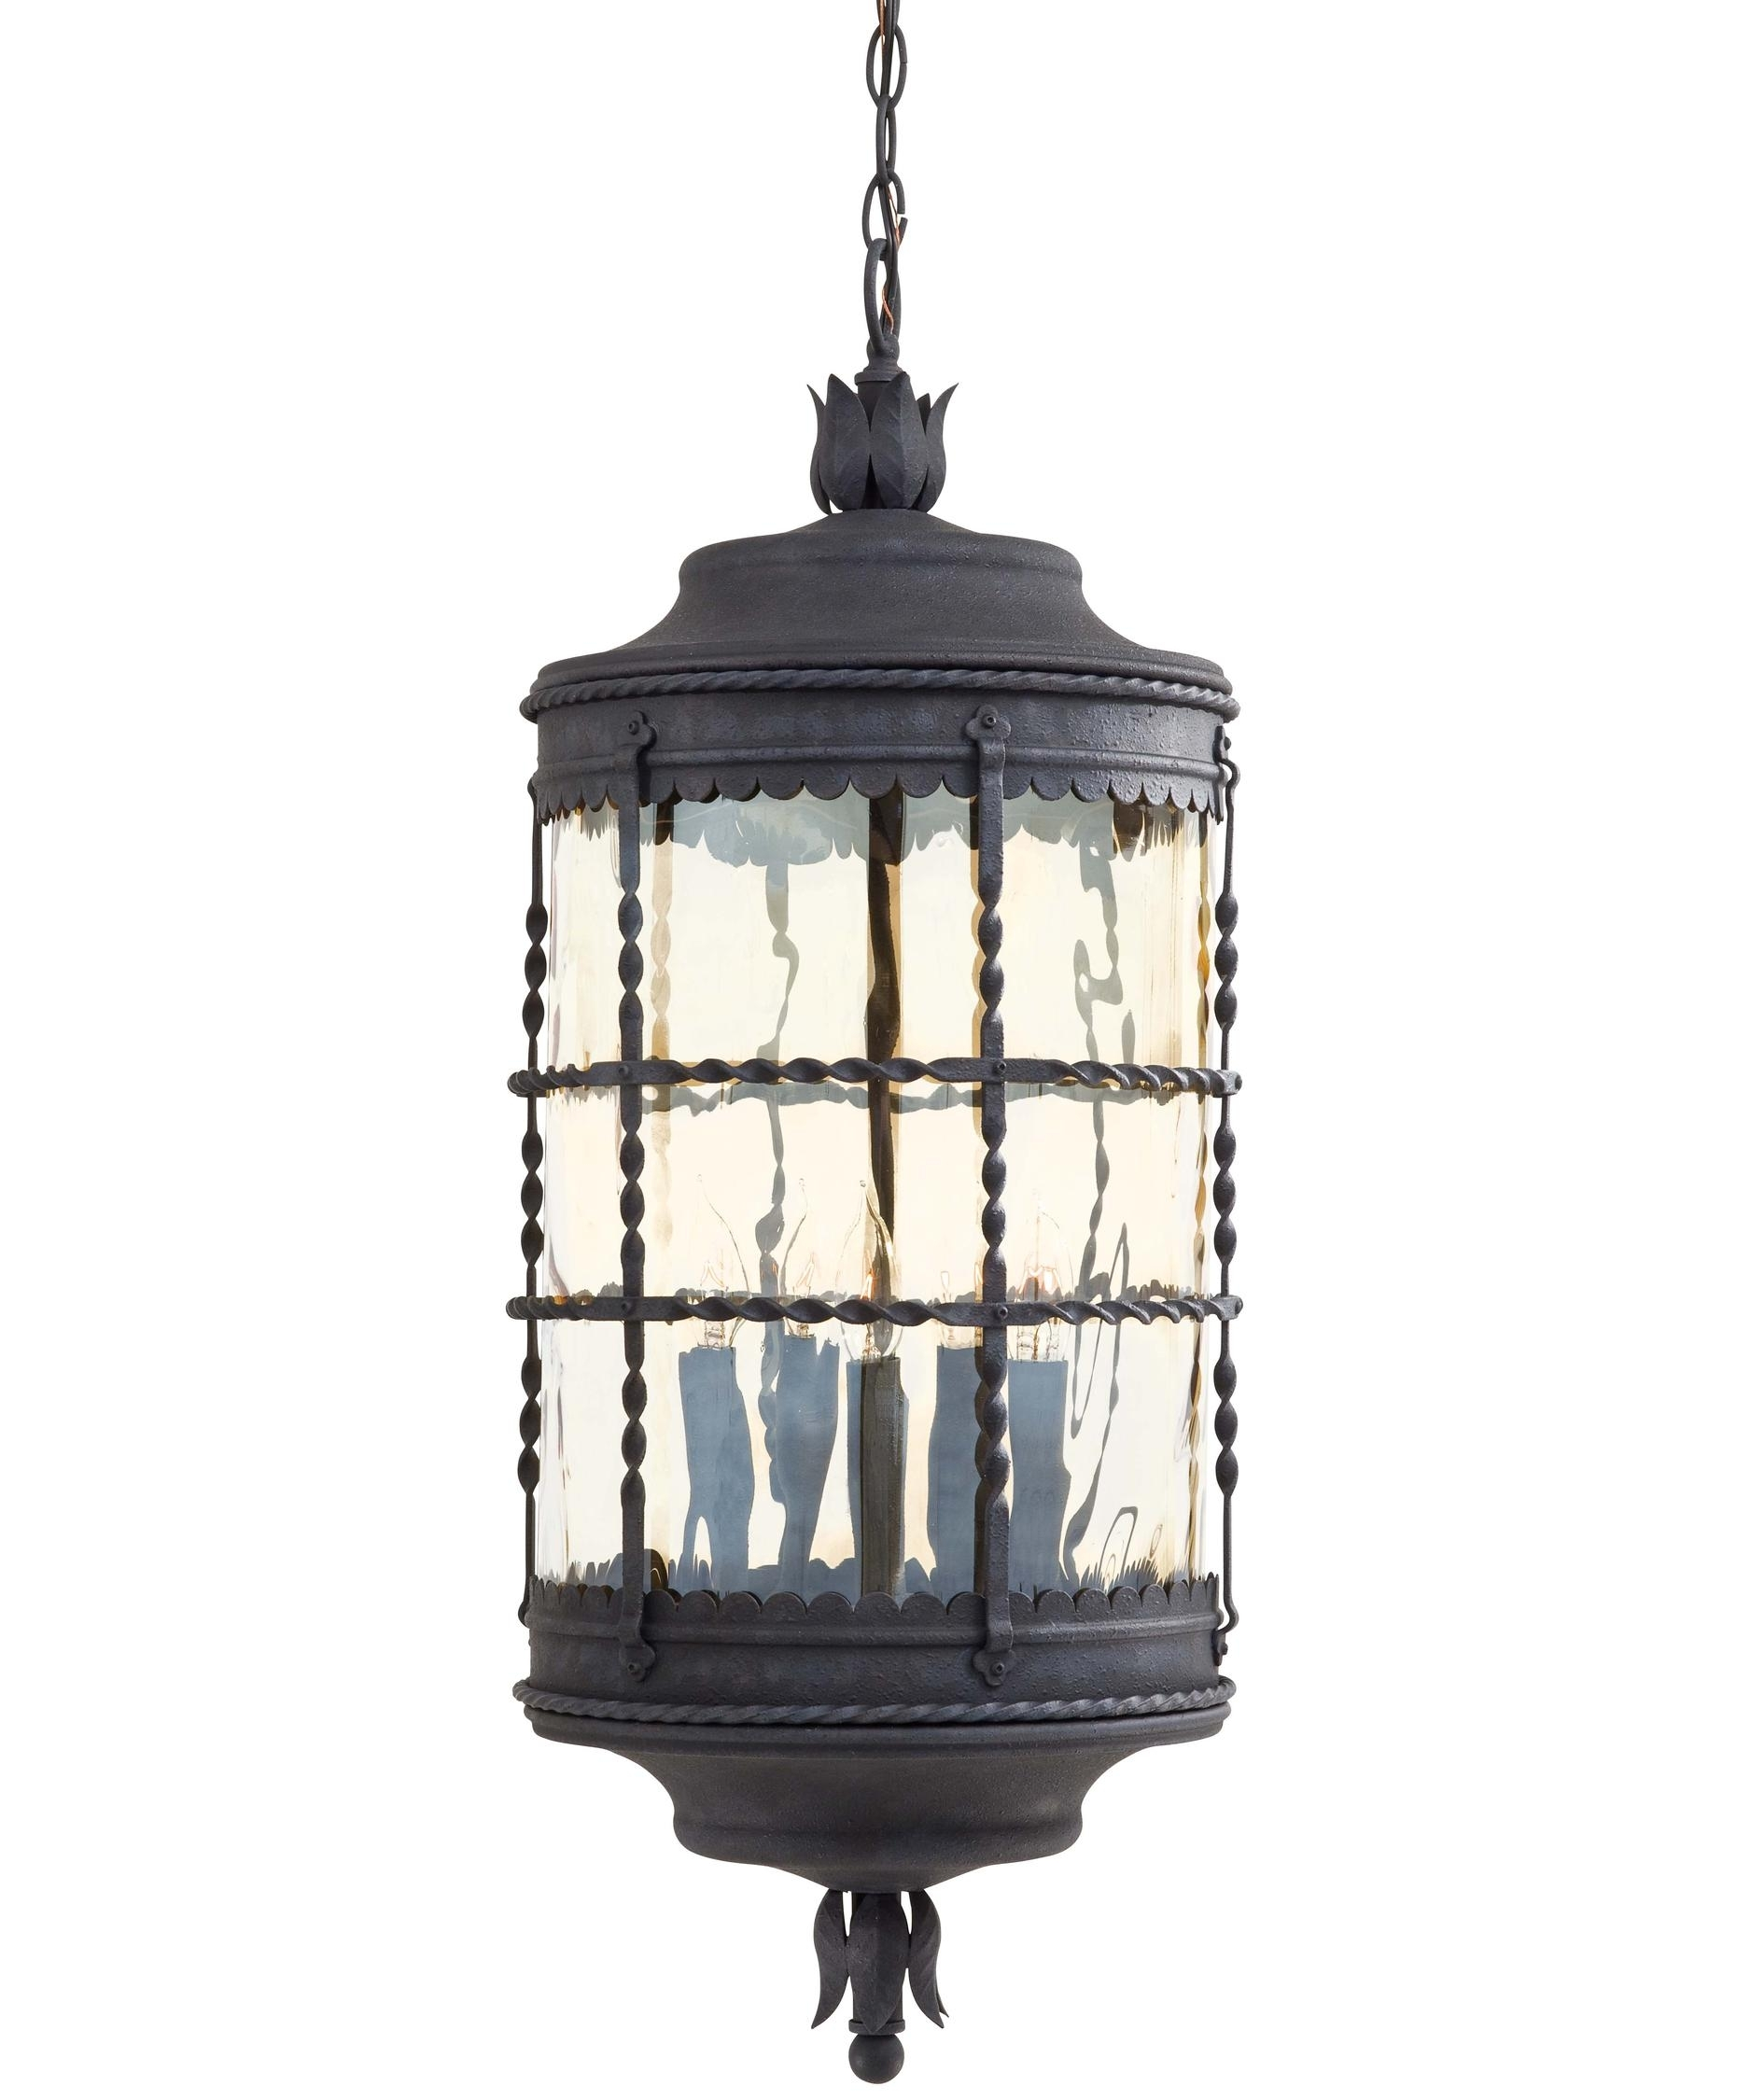 Minka Lavery 8884 Mallorca 13 Inch Wide 5 Light Outdoor Hanging Intended For Outdoor Hanging Glass Lights (#7 of 15)